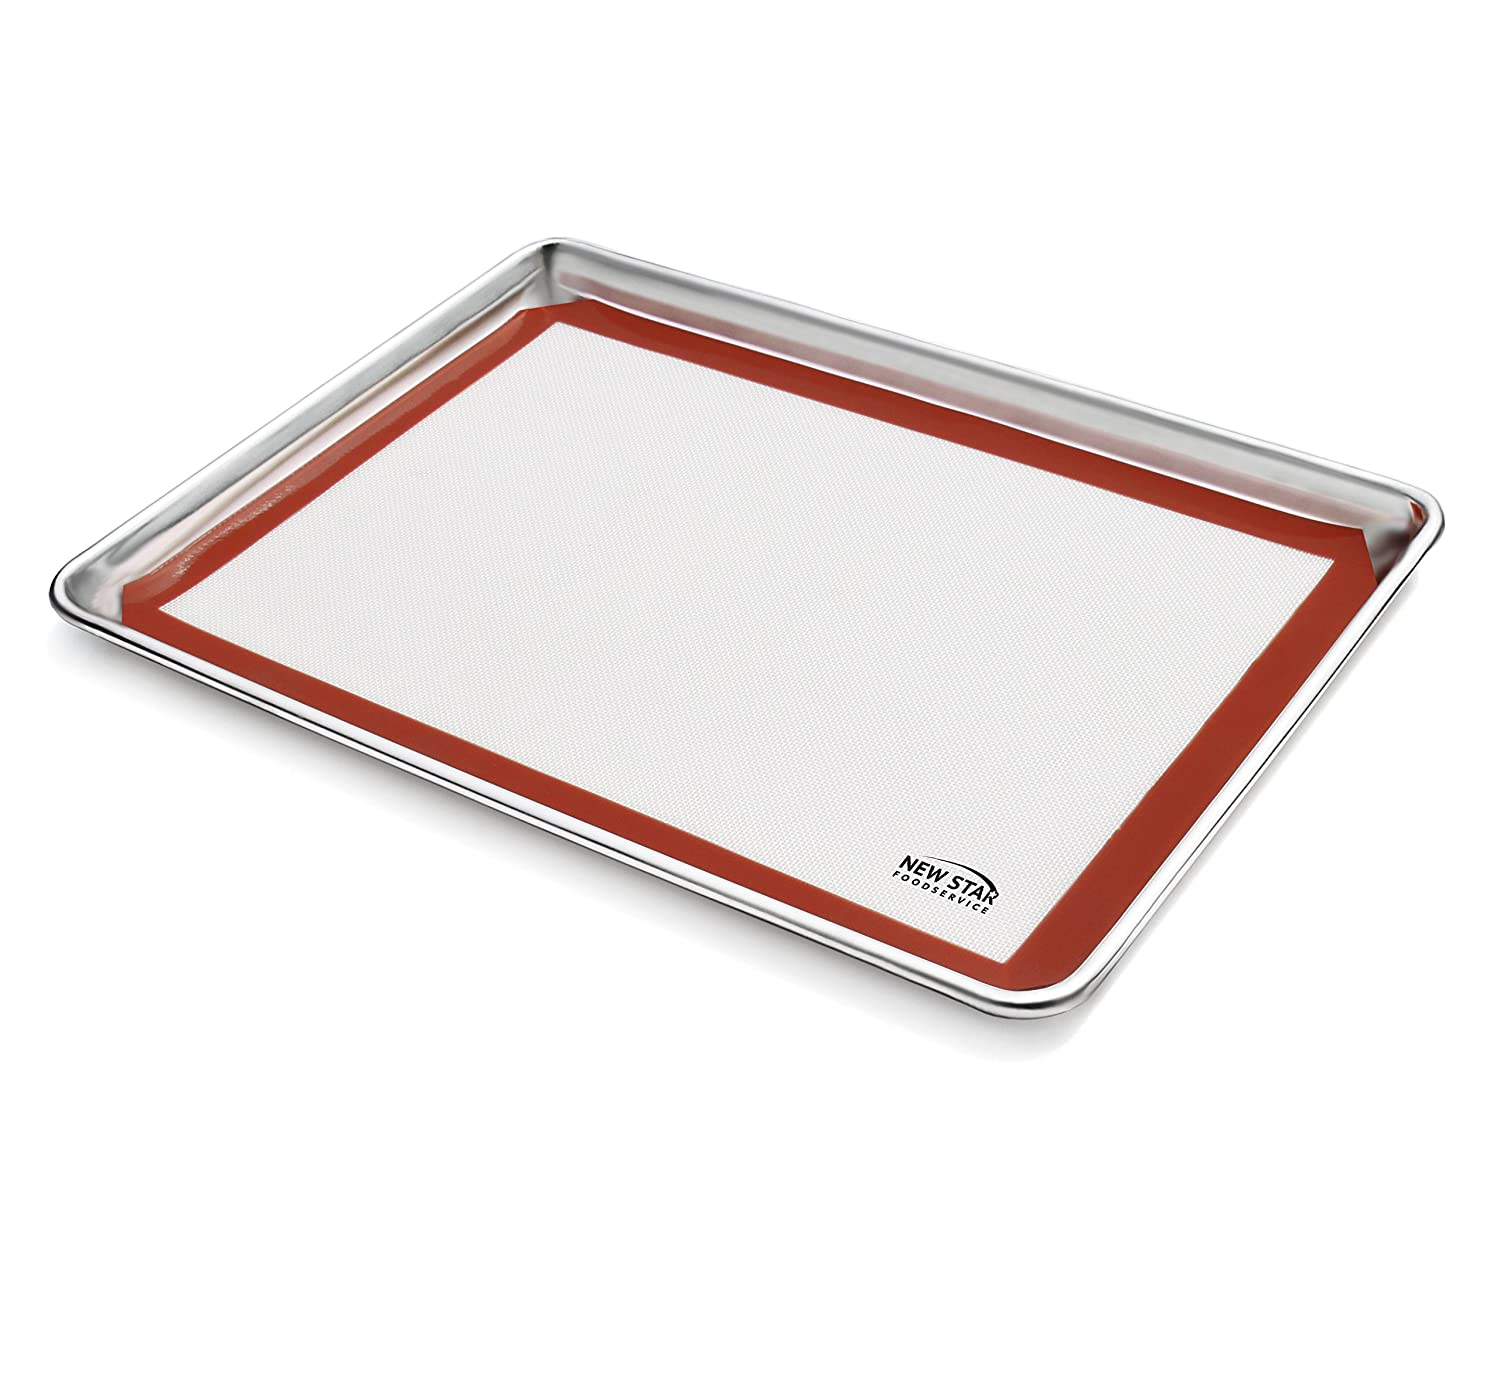 New Star Foodservice 38446 Commercial 18-Gauge Aluminum Sheet Pan and Silicone Baking Mat Set, 15 x 21 inch (Two-Thirds Size)